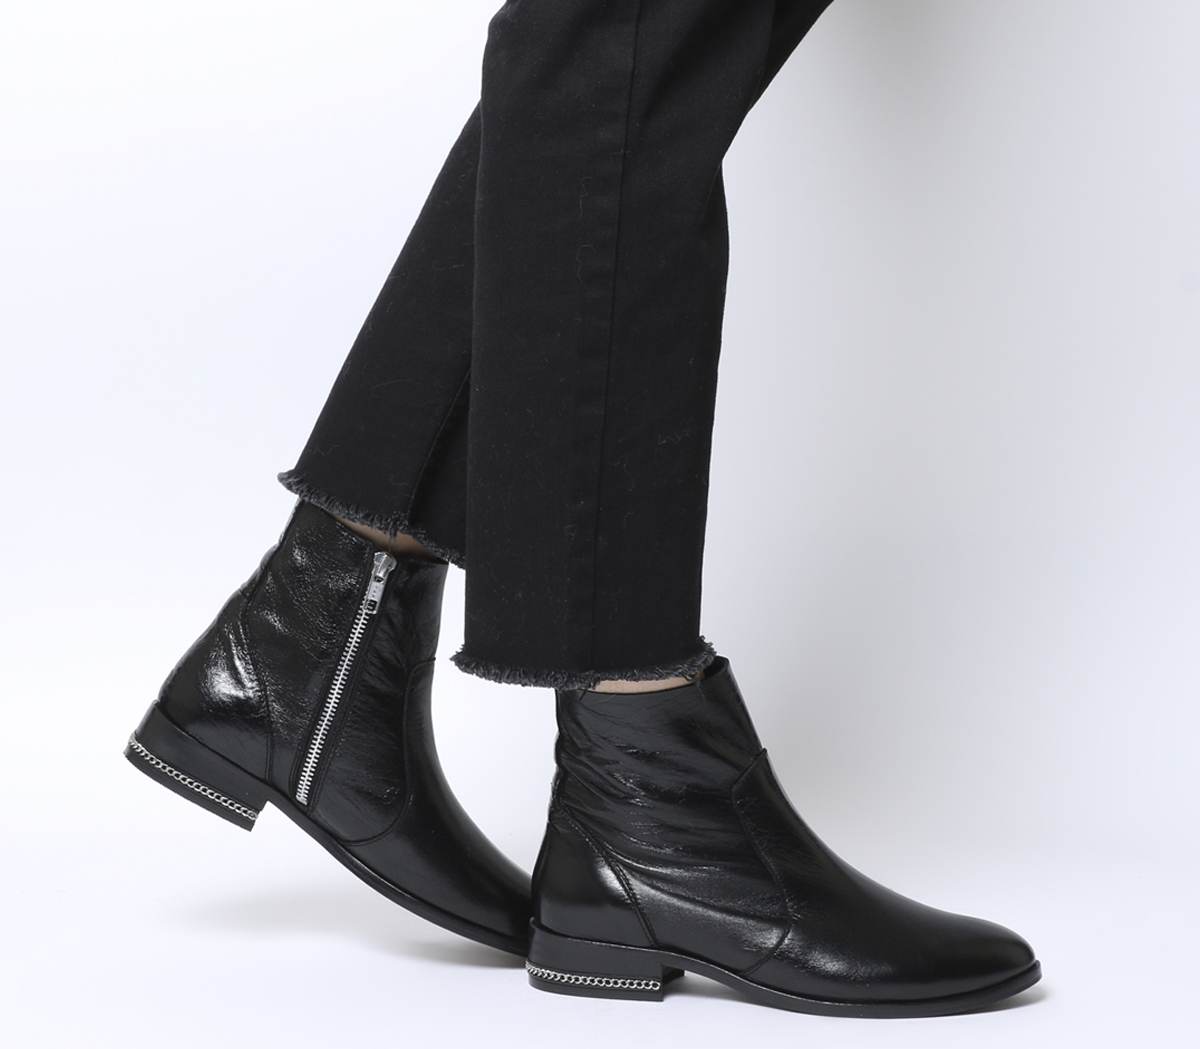 8b0dd21aacbc Sentinel Womens Office Ashleigh Flat Ankle Boots Black Leather With Chain  Boots